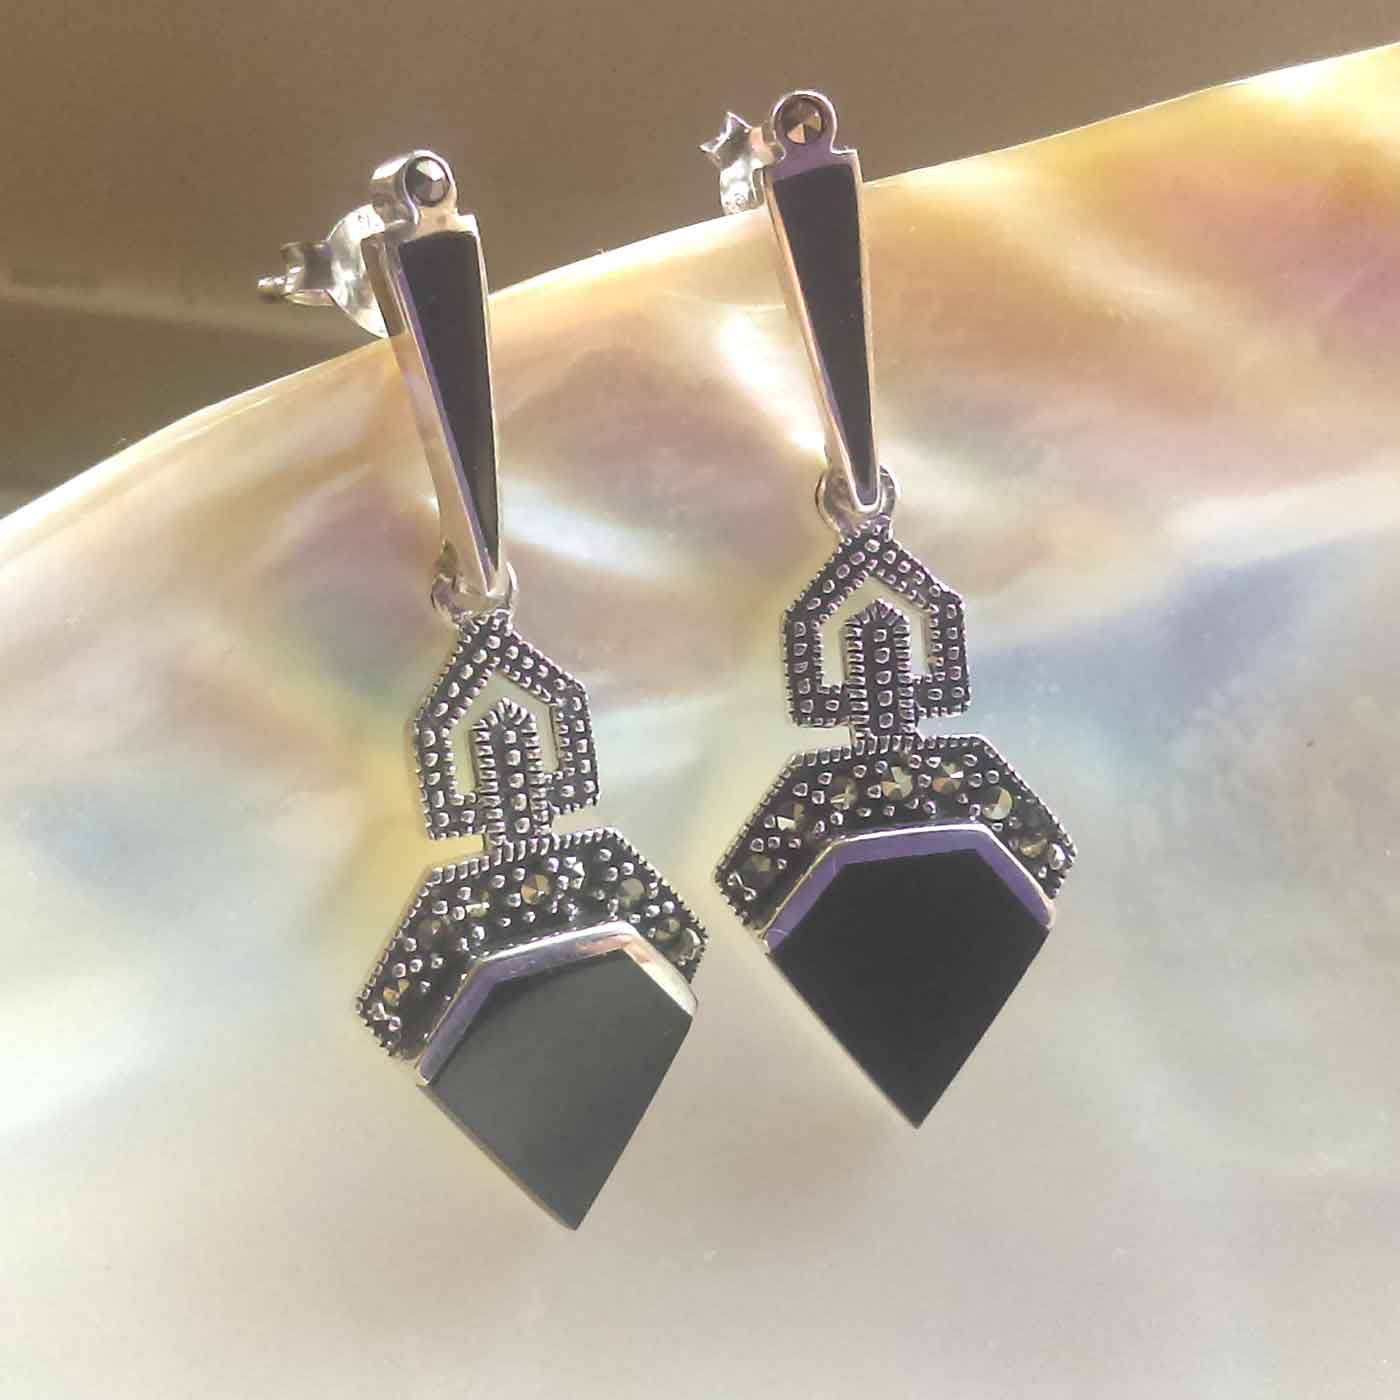 Art Deco Style Earrings Uk Sterling Silver Art Deco Marcasite Earrings Black Onyx Earrings Vintage Style Earrings Uk Seller Marcasite Jewellery Marcasite Jewelry